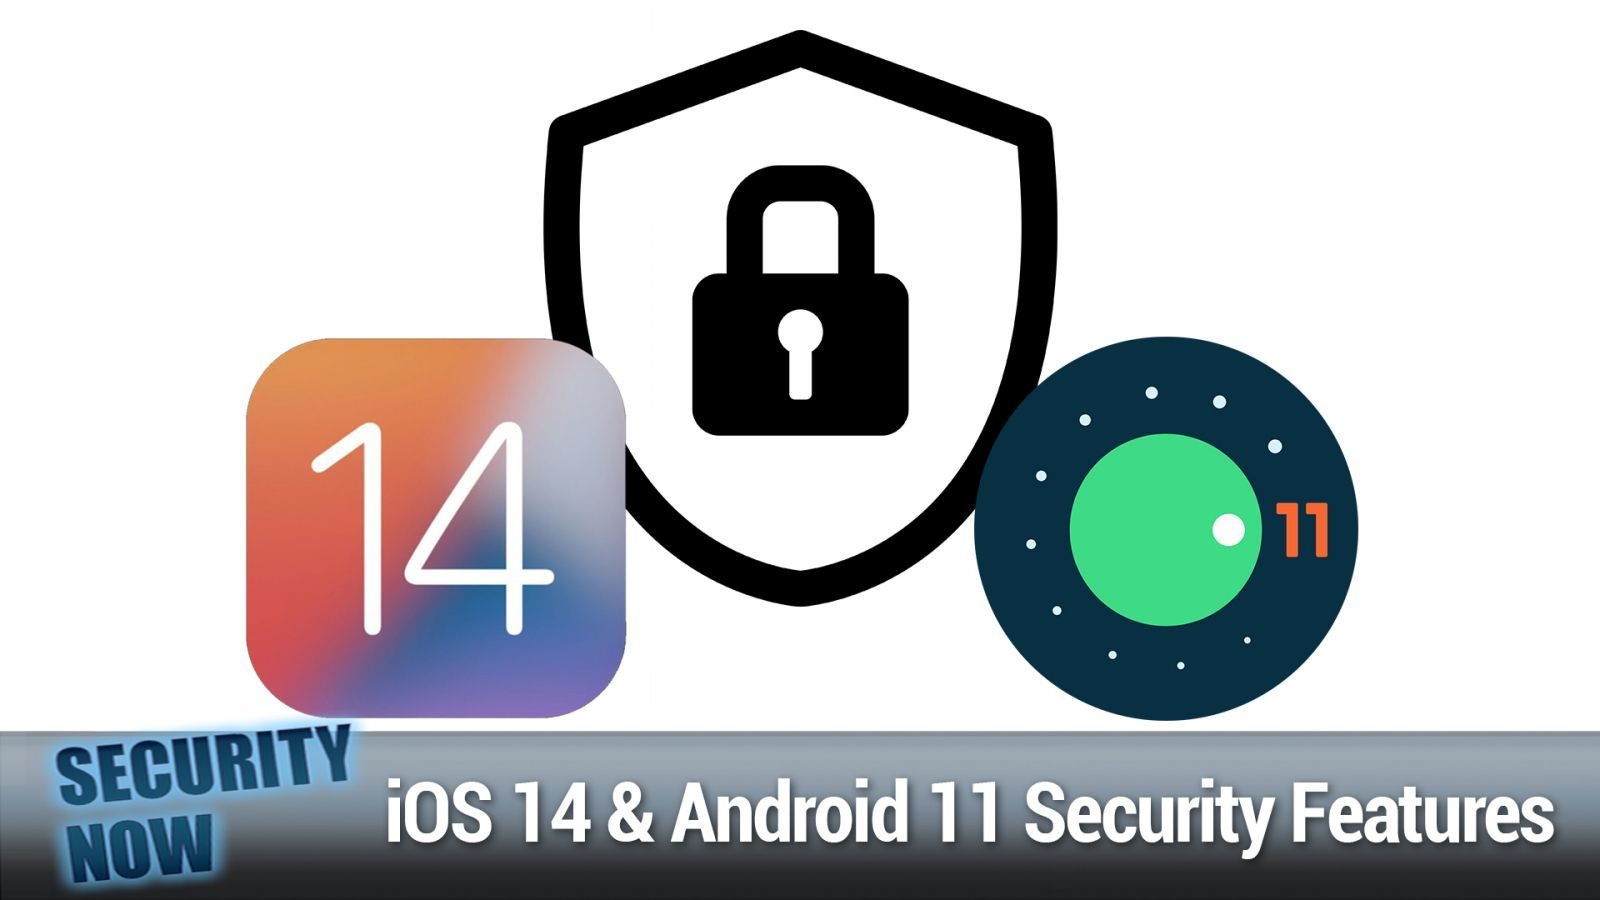 iOS 14 & Android 11 Security Features, DuckDuckGo Gets Big